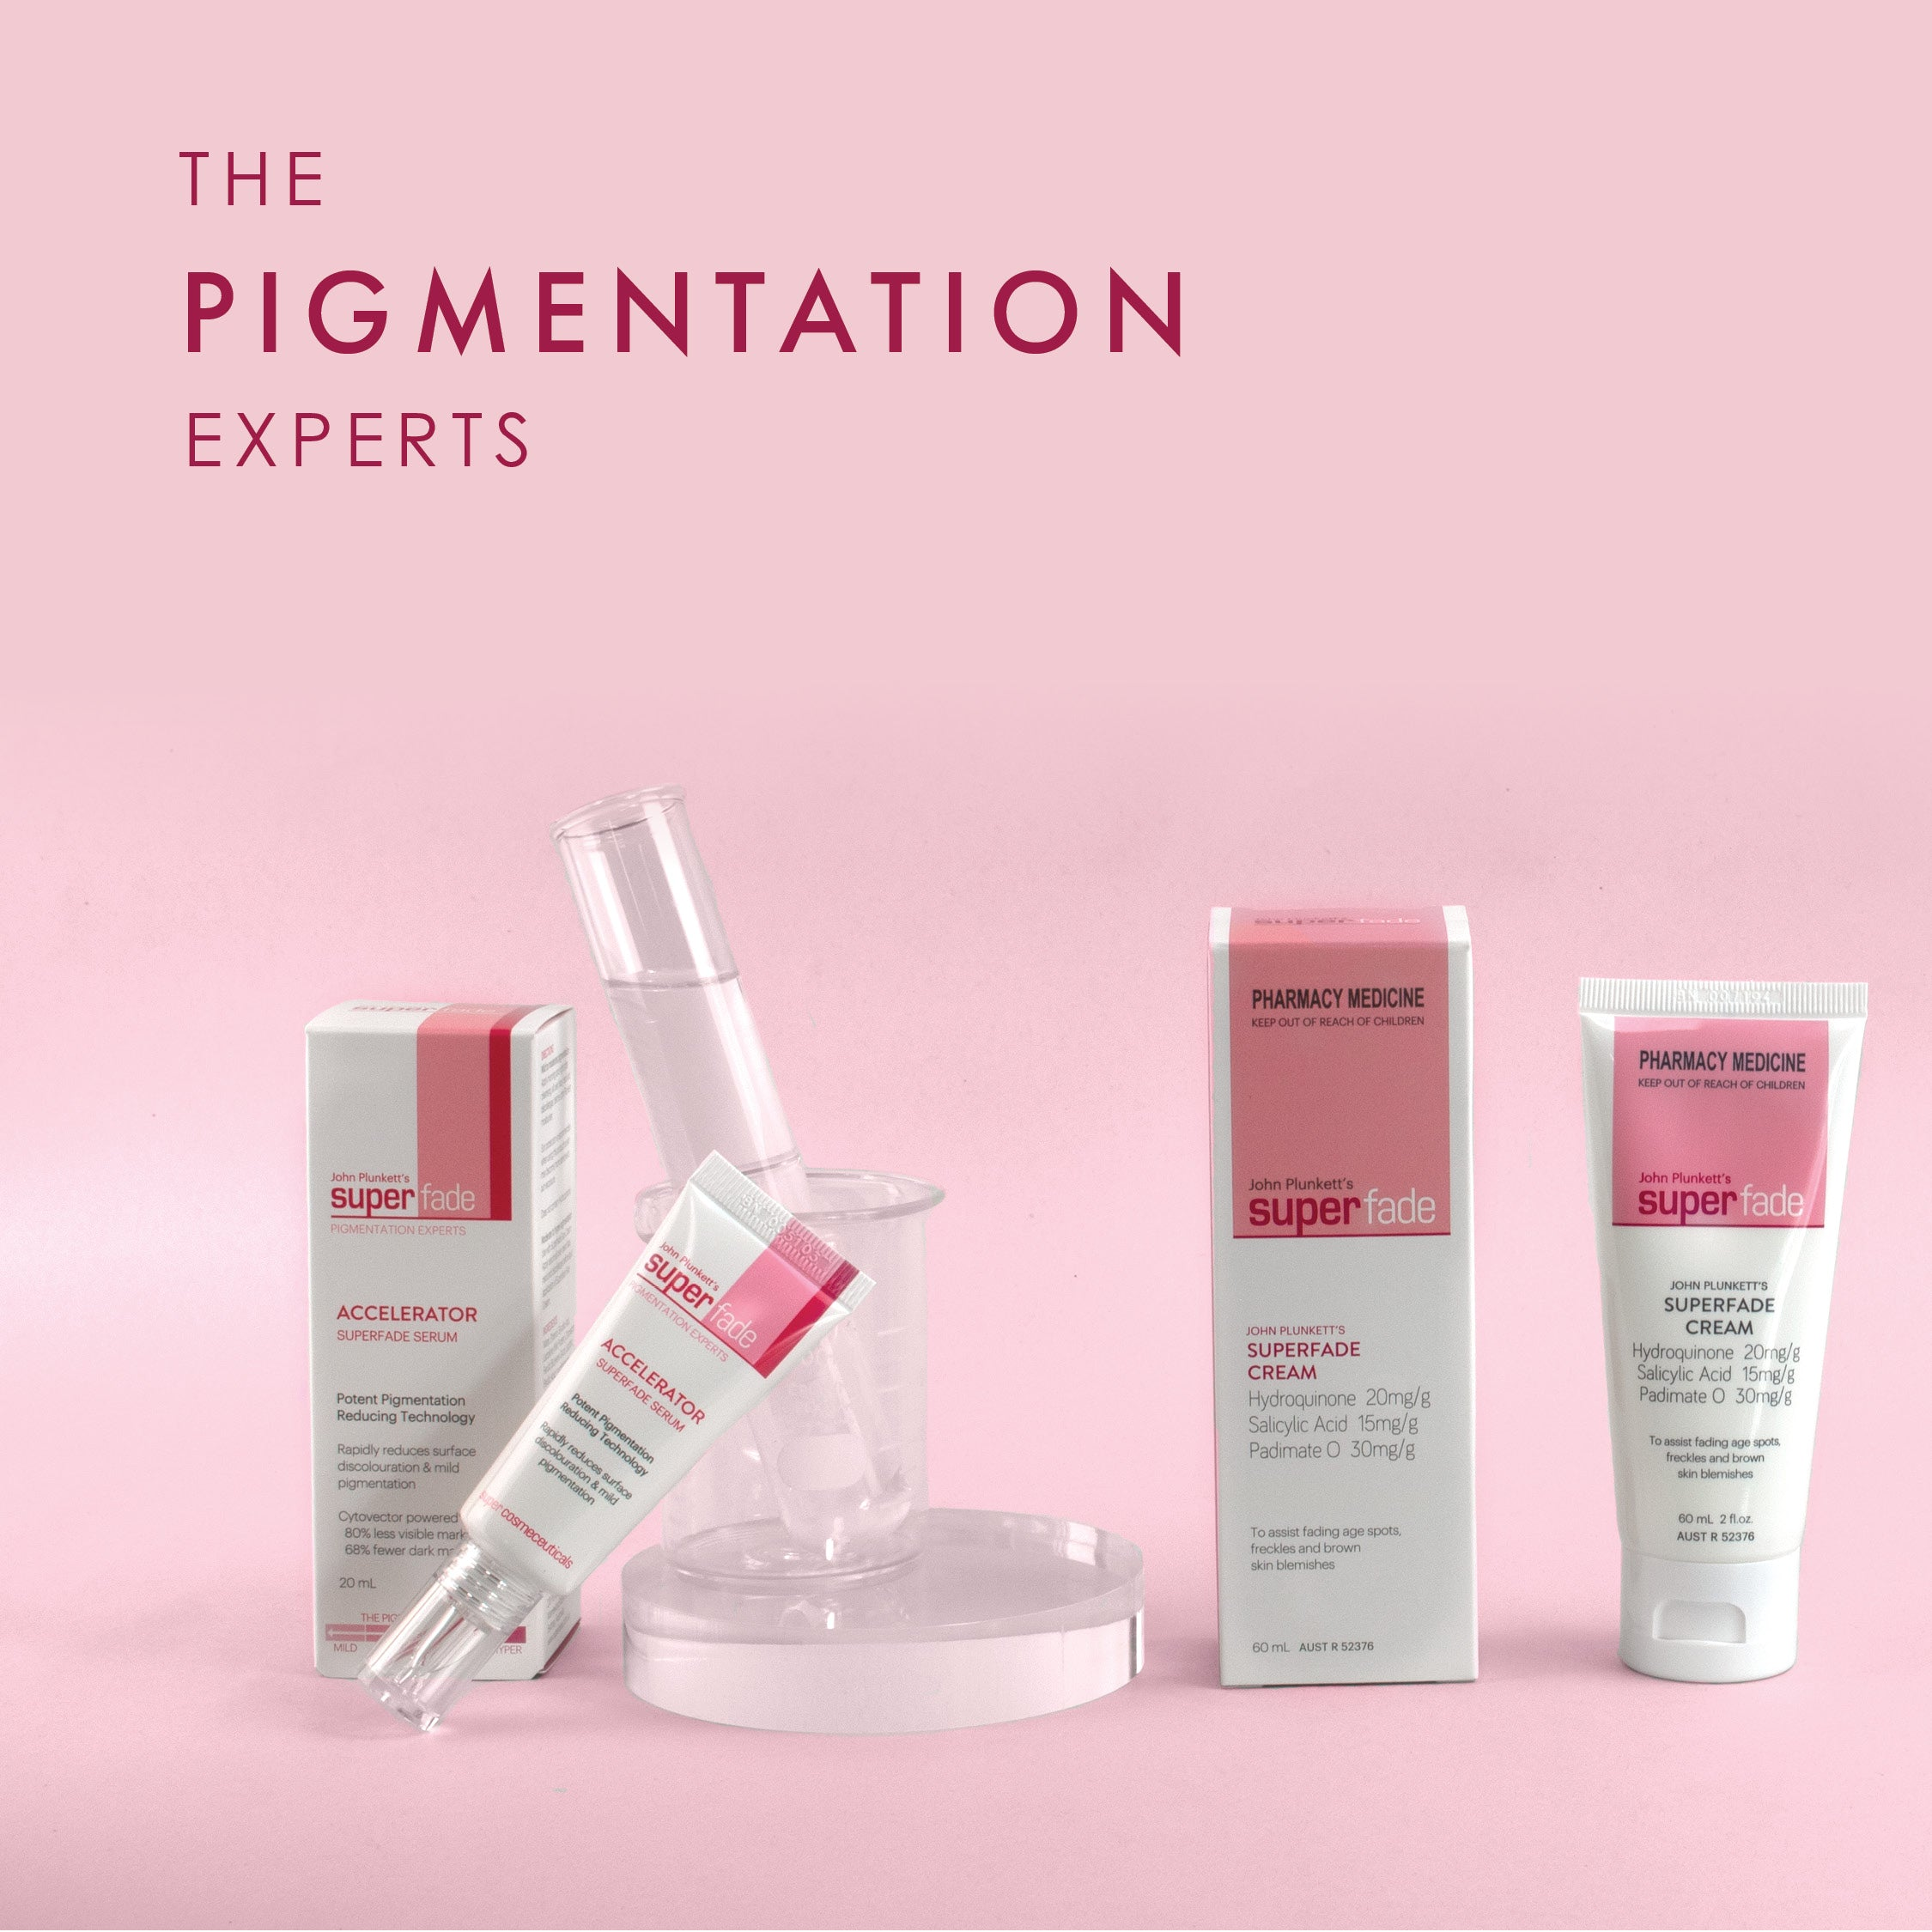 Image of Plunkett's pigmentation creams and serums